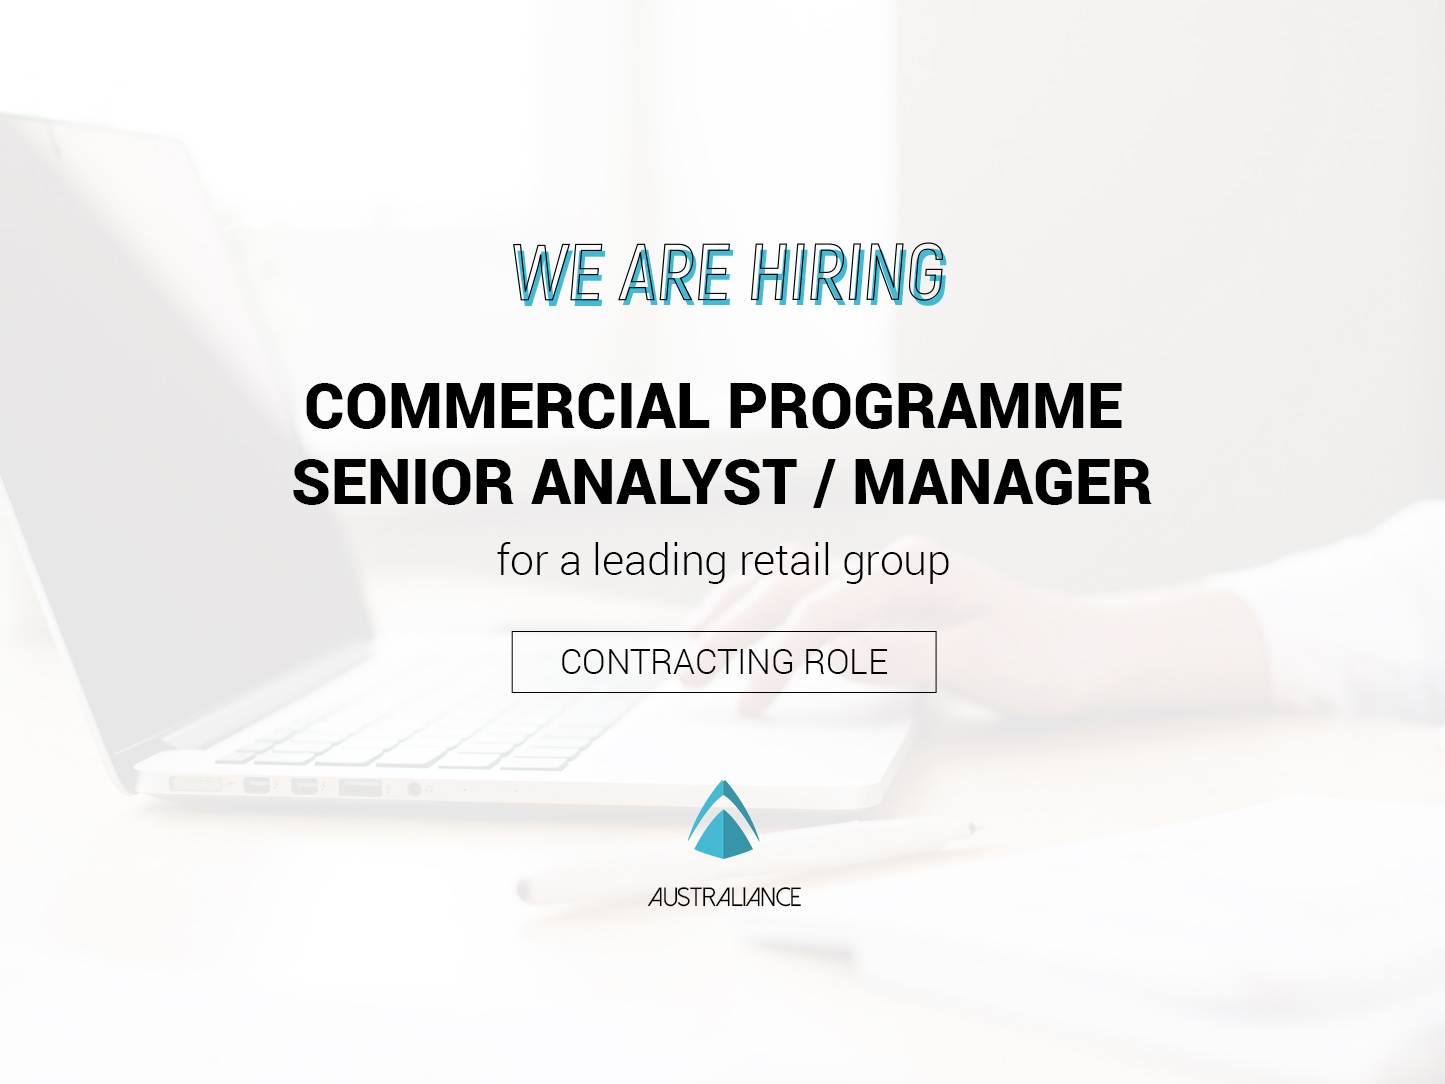 Hired — Job offer: Commercial Programme Senior Analyst